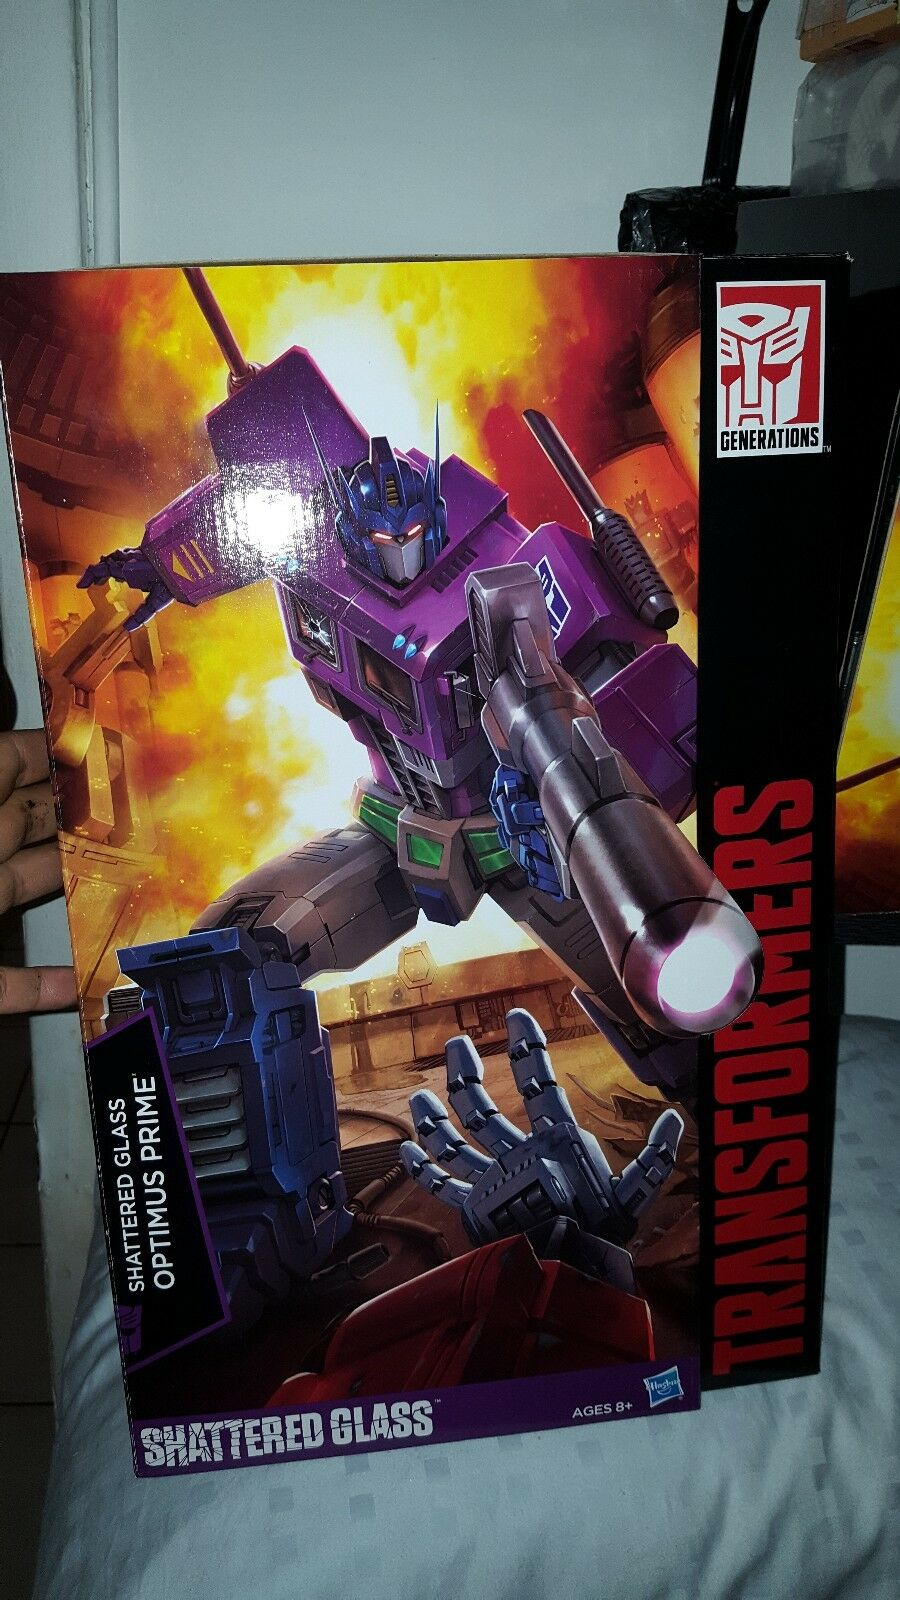 Transformers Masterpiece Shattered Glass Optimus Prime 100% Authentic